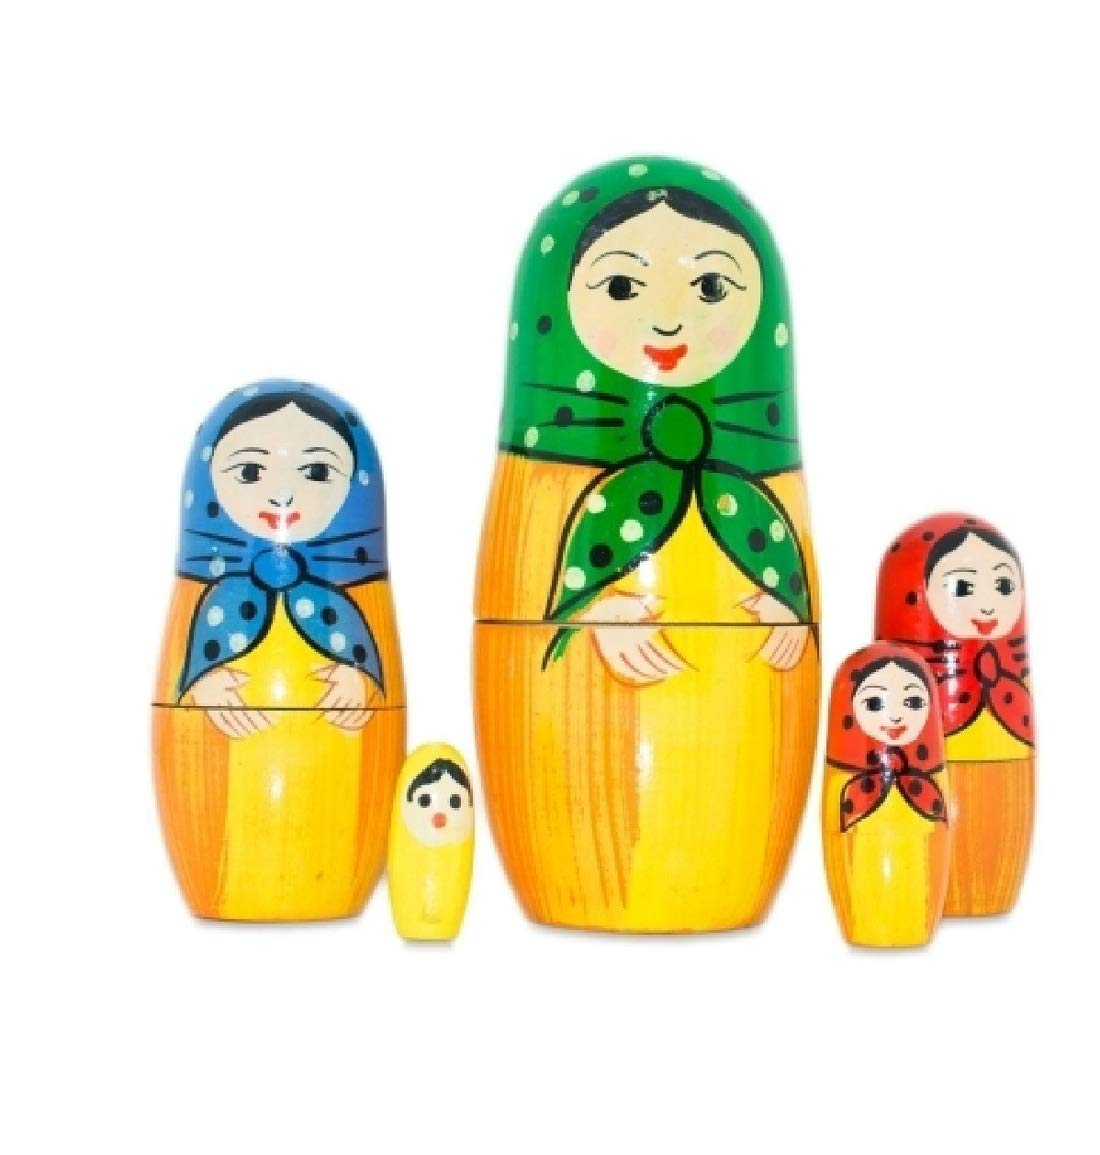 far-from-a-happy-toy-story-channapatna-toys